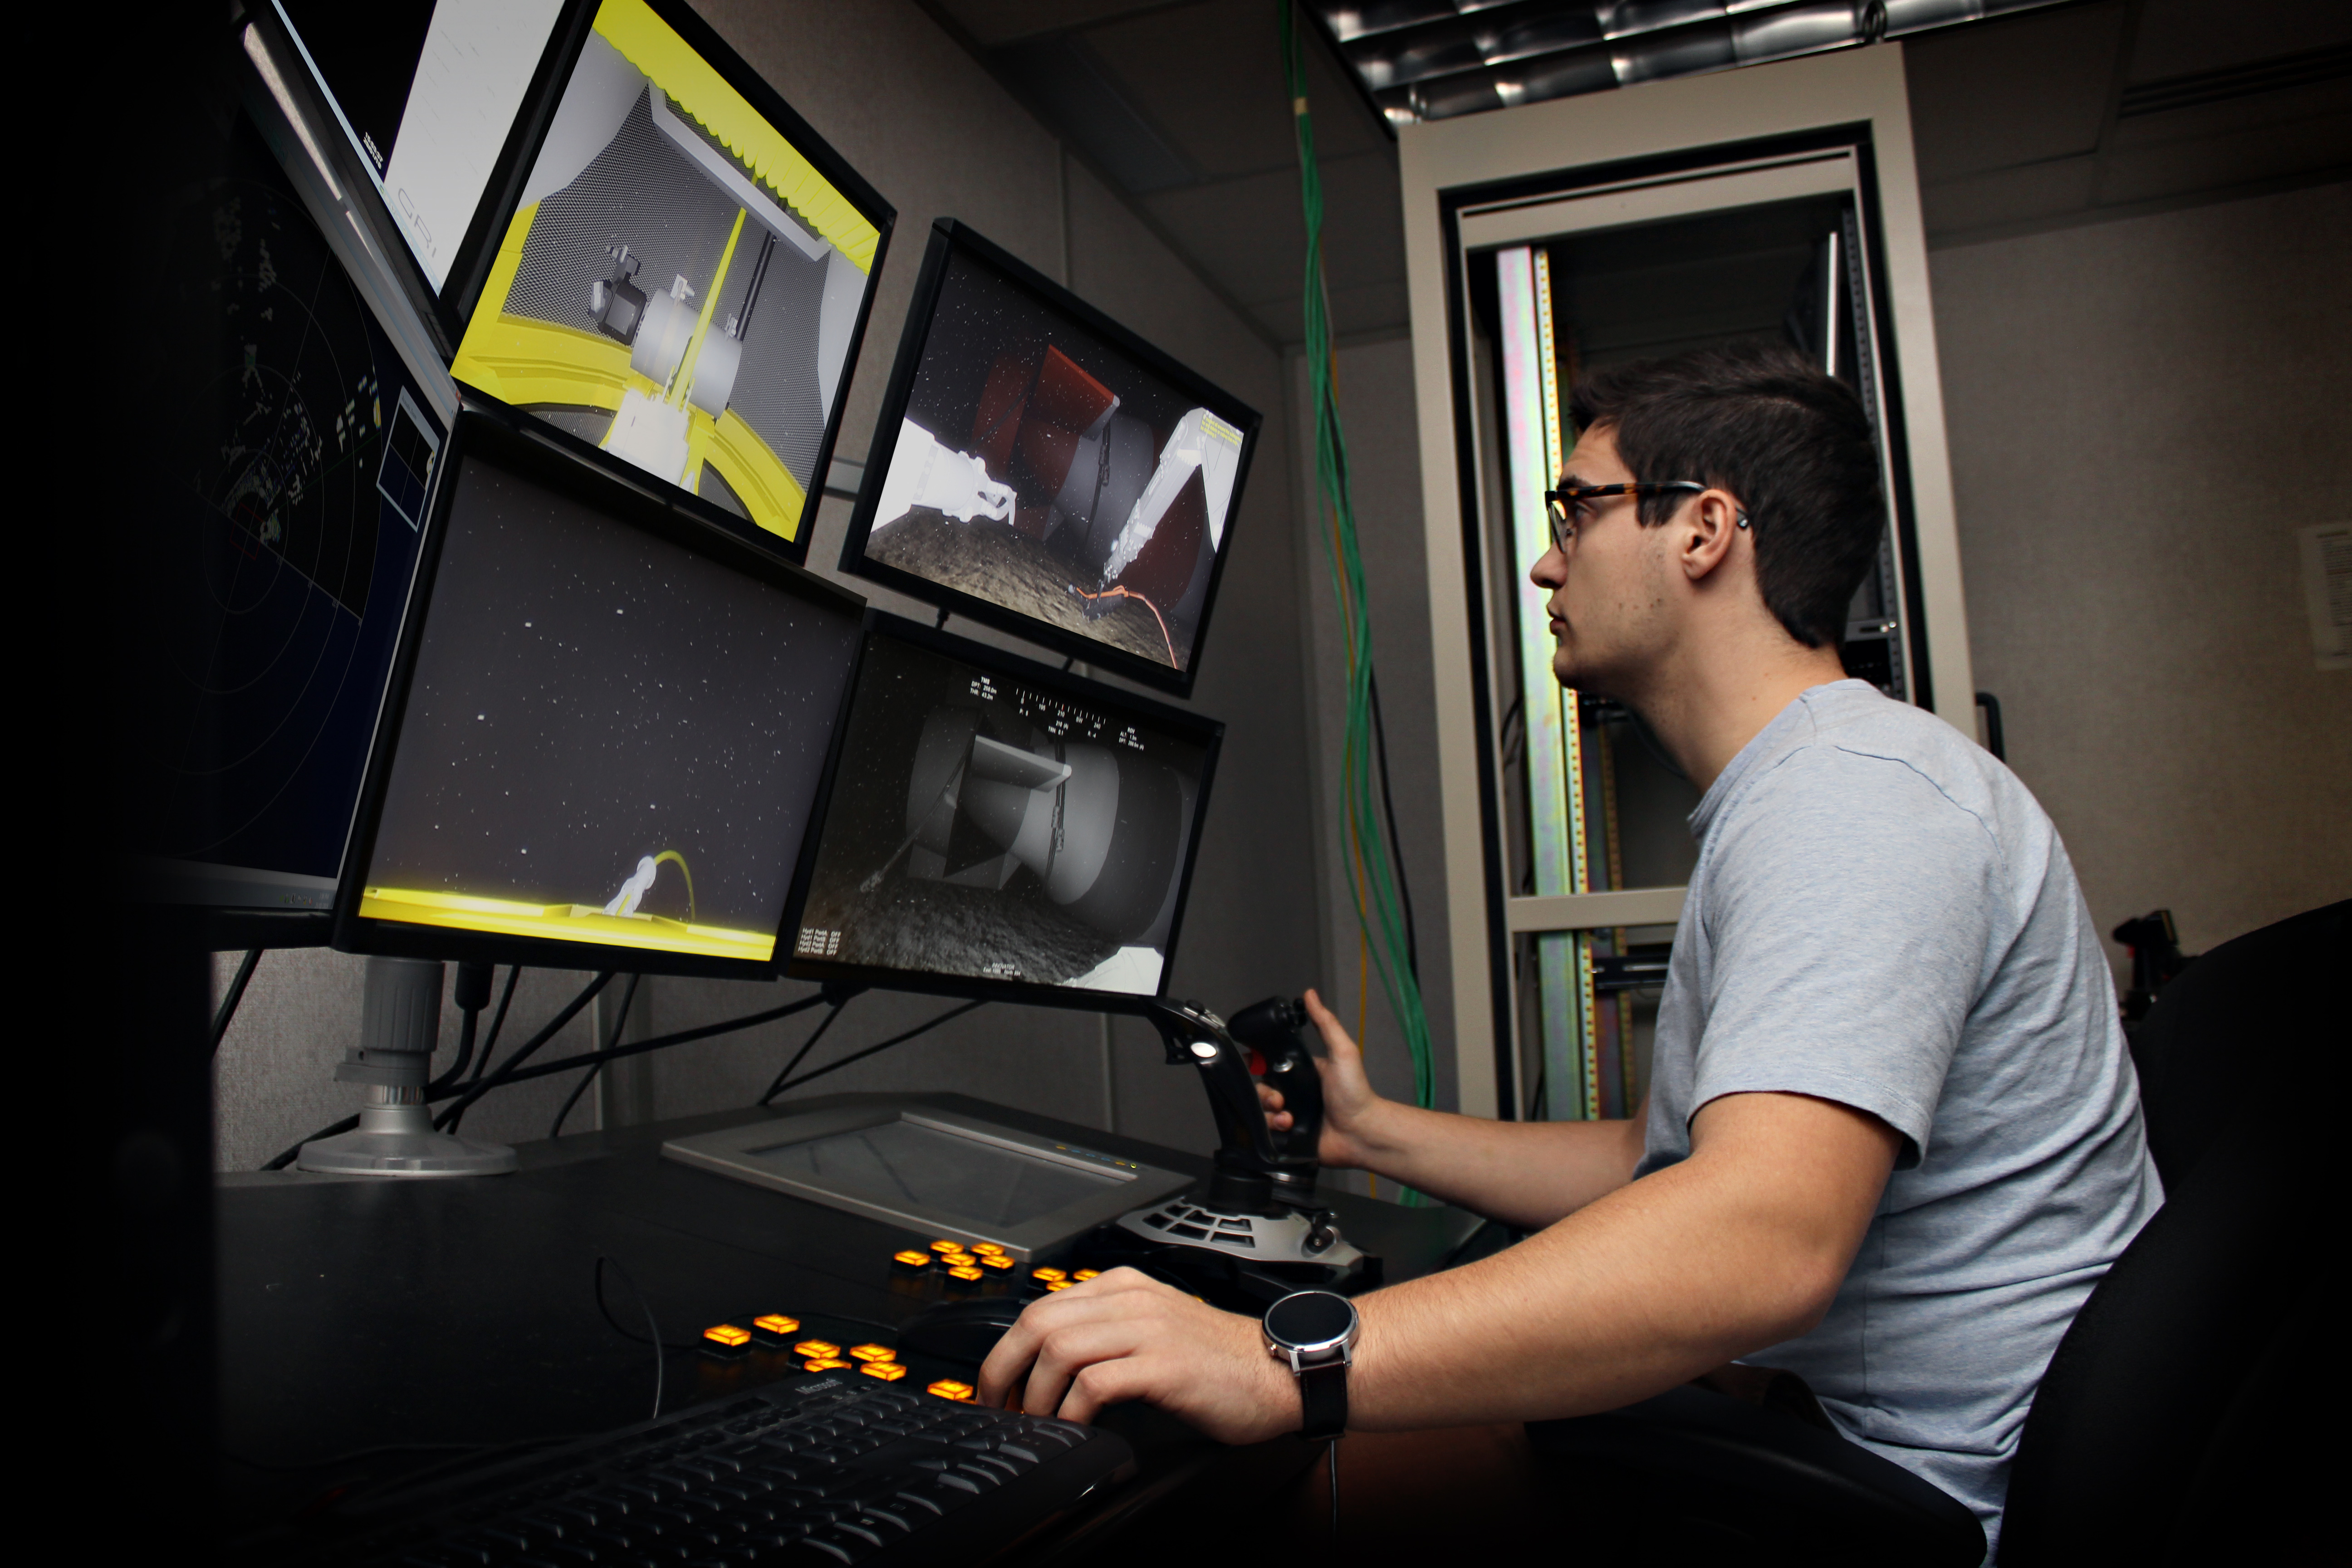 A student at the ROV simulation center at the Marine Institute in St. John's, Newfoundland, trains in a virtual marine environment to operate a work class ROV. (Source: Marine Institute, MUN)